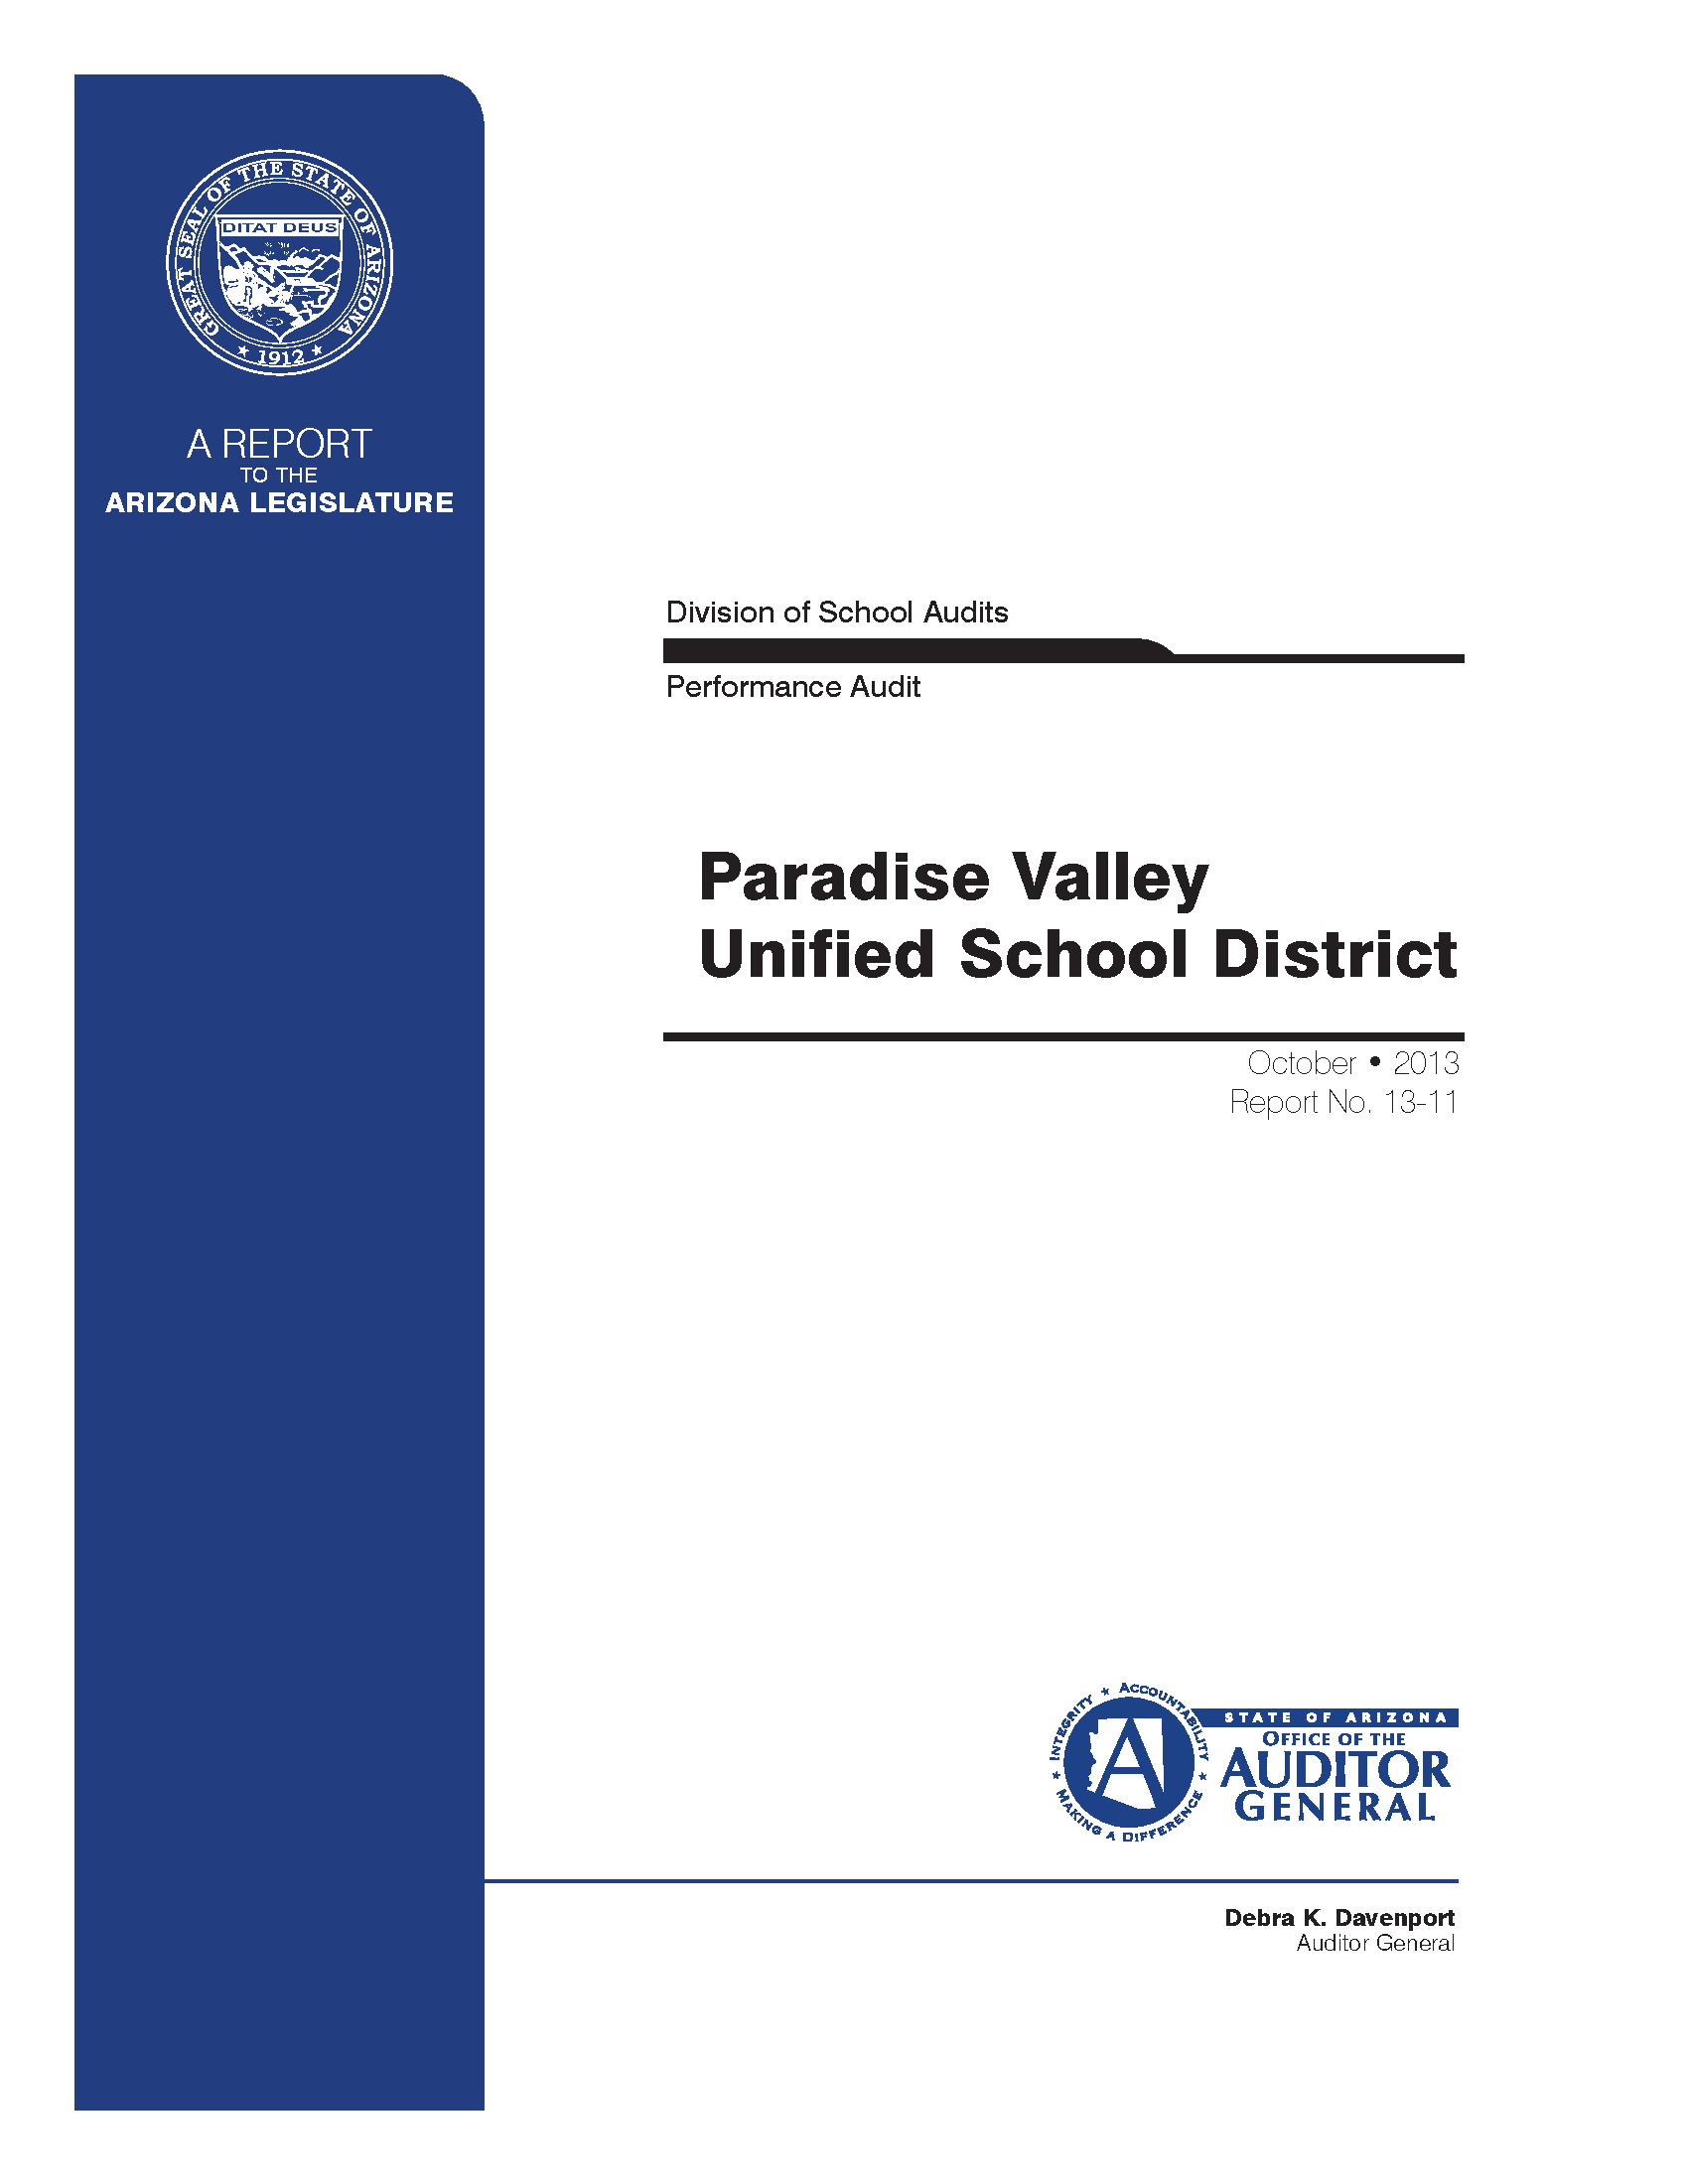 Performance Audit, Paradise Valley Unified School District With Paradise Valley Unified Calendar